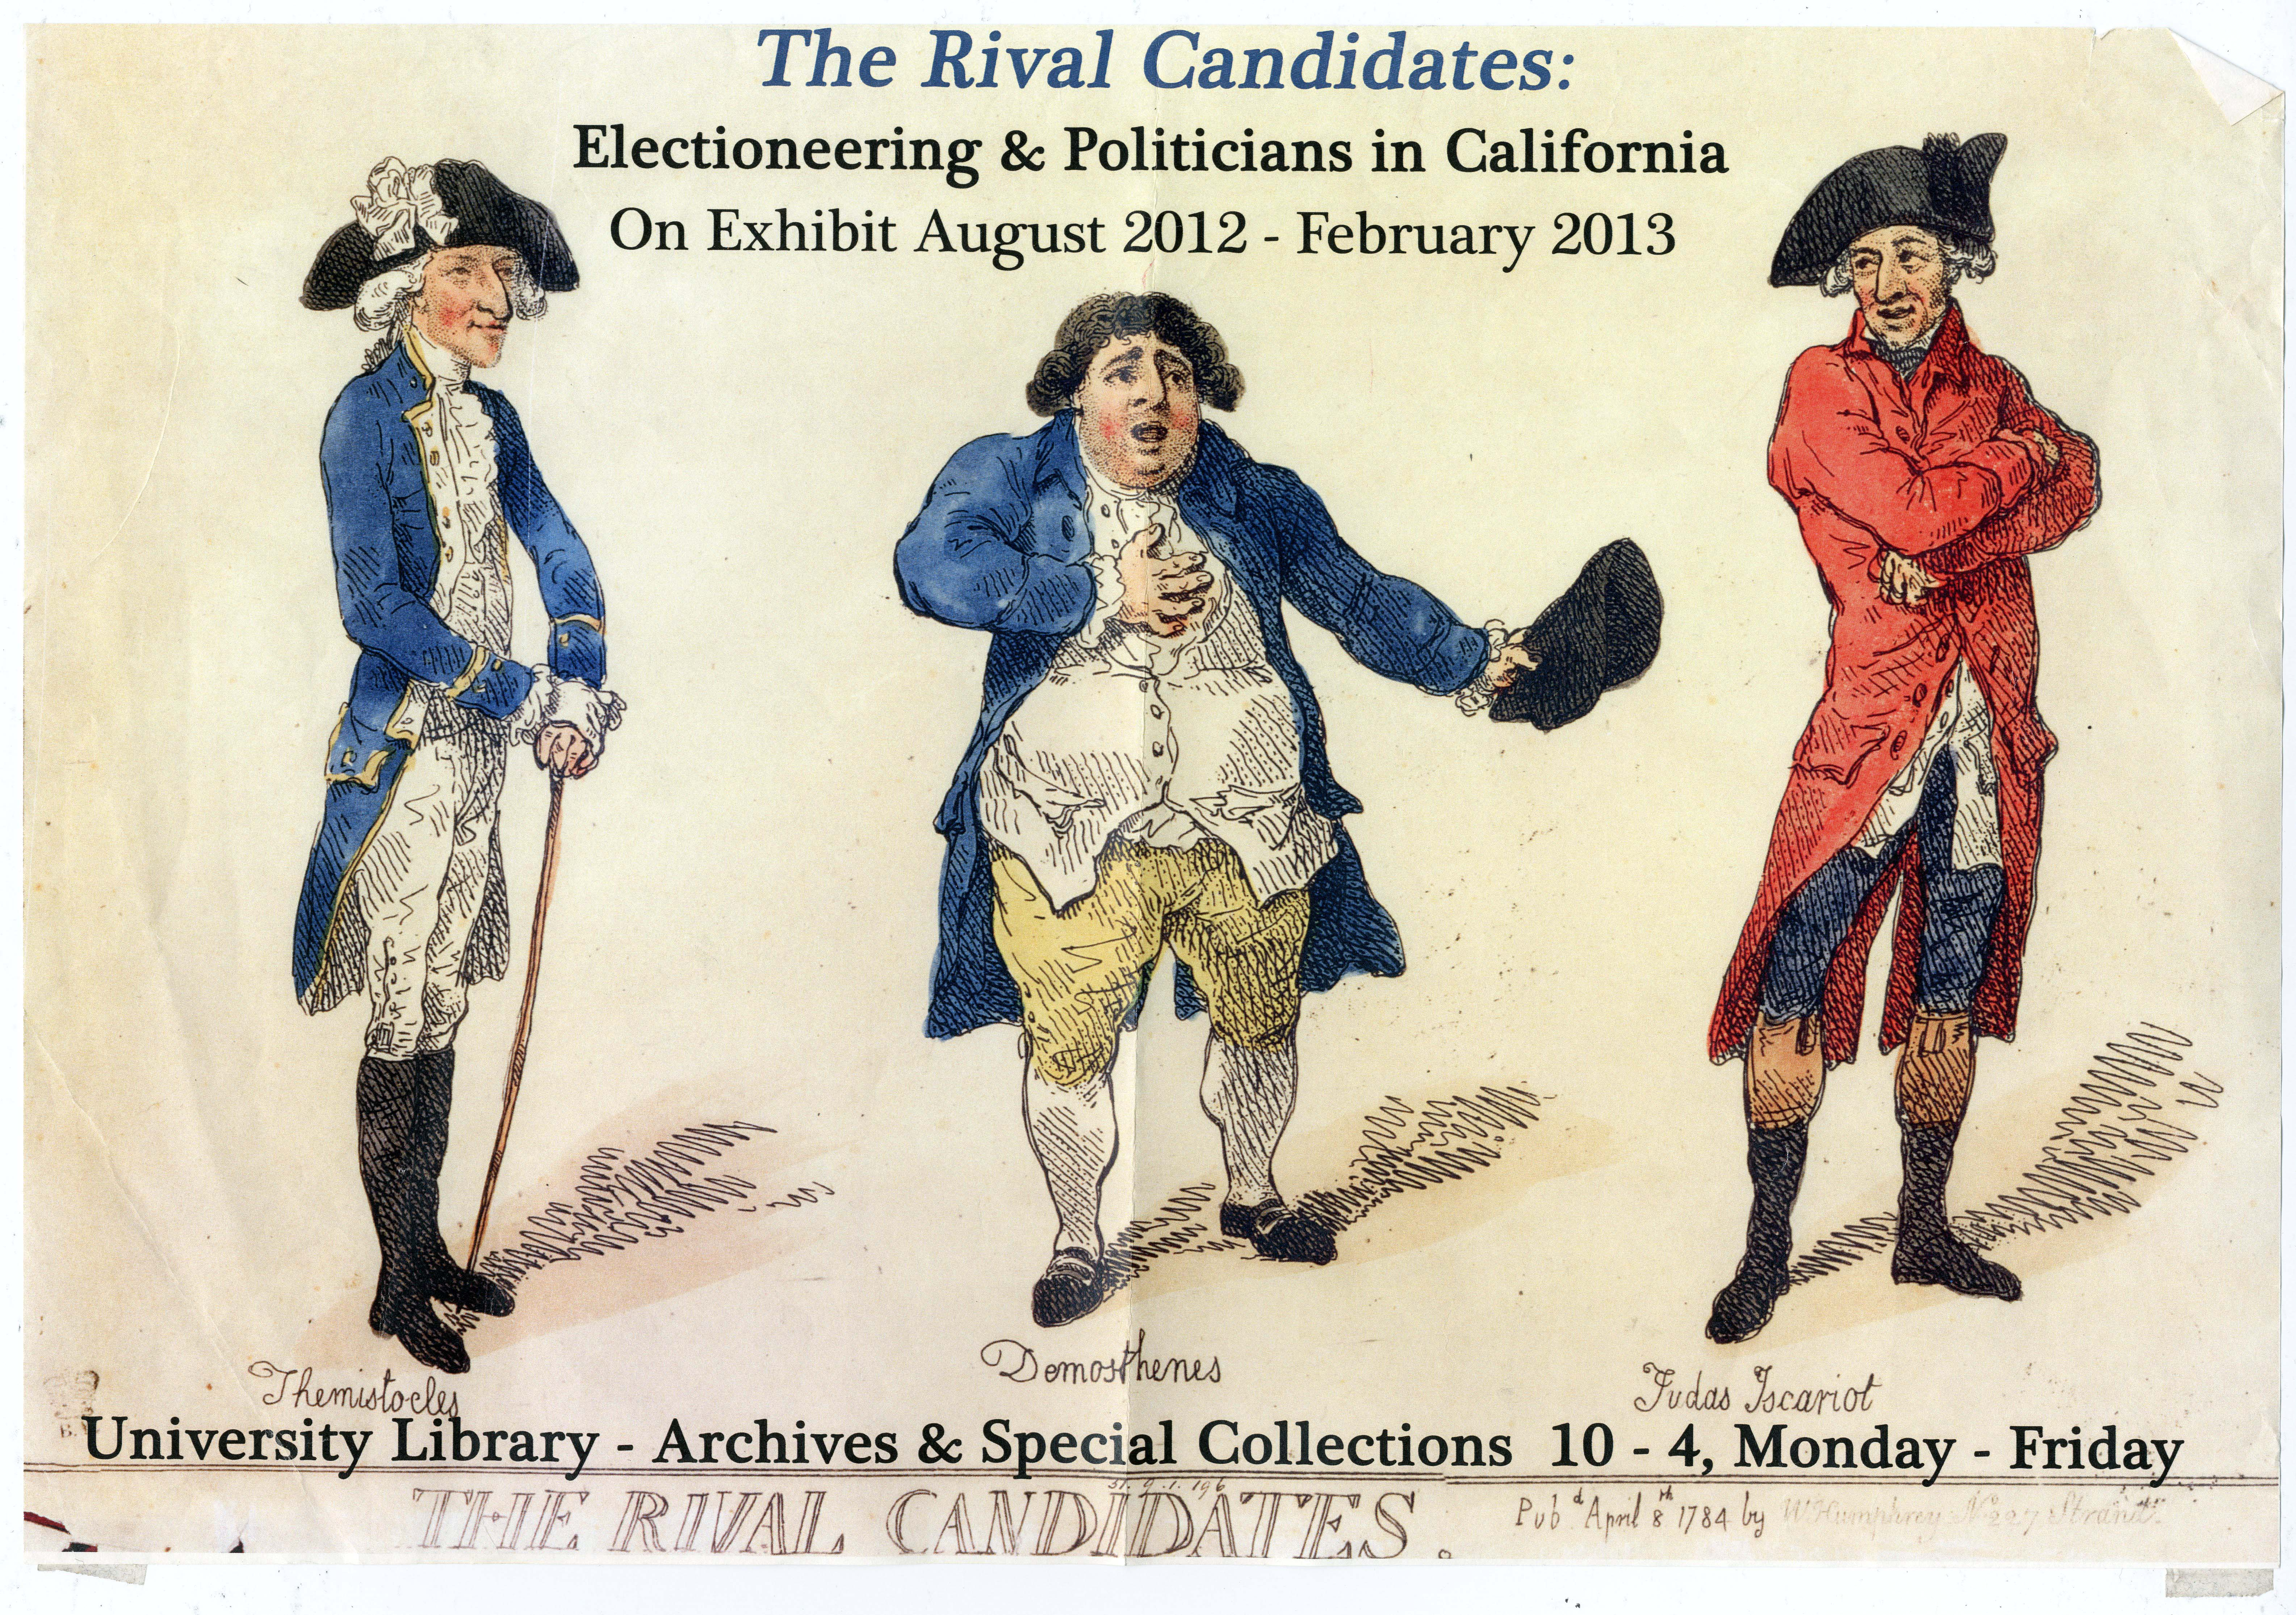 The Rival Candidates flyer